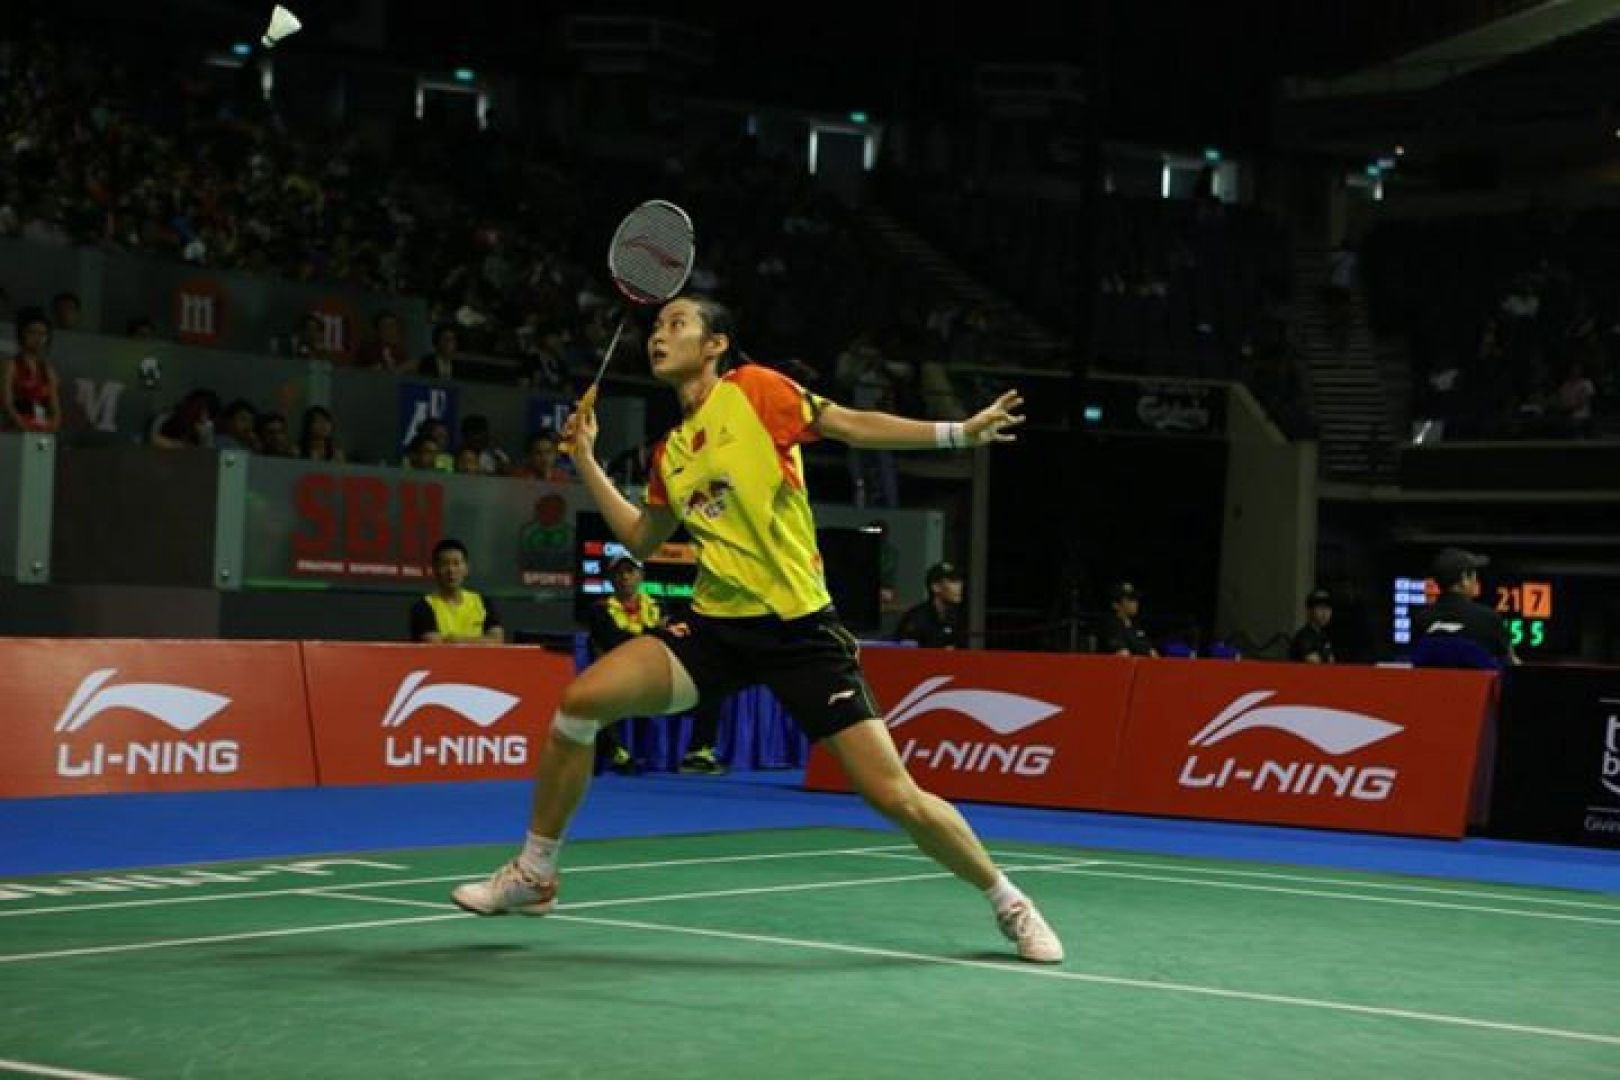 China's Wang Yihan (pictured) will be among the stars to headline the US$300,000 OUE Singapore Open badminton championships from April 8 to 13 at the Singapore Indoor Stadium. Photo courtesy of the Singapore Badminton Association.